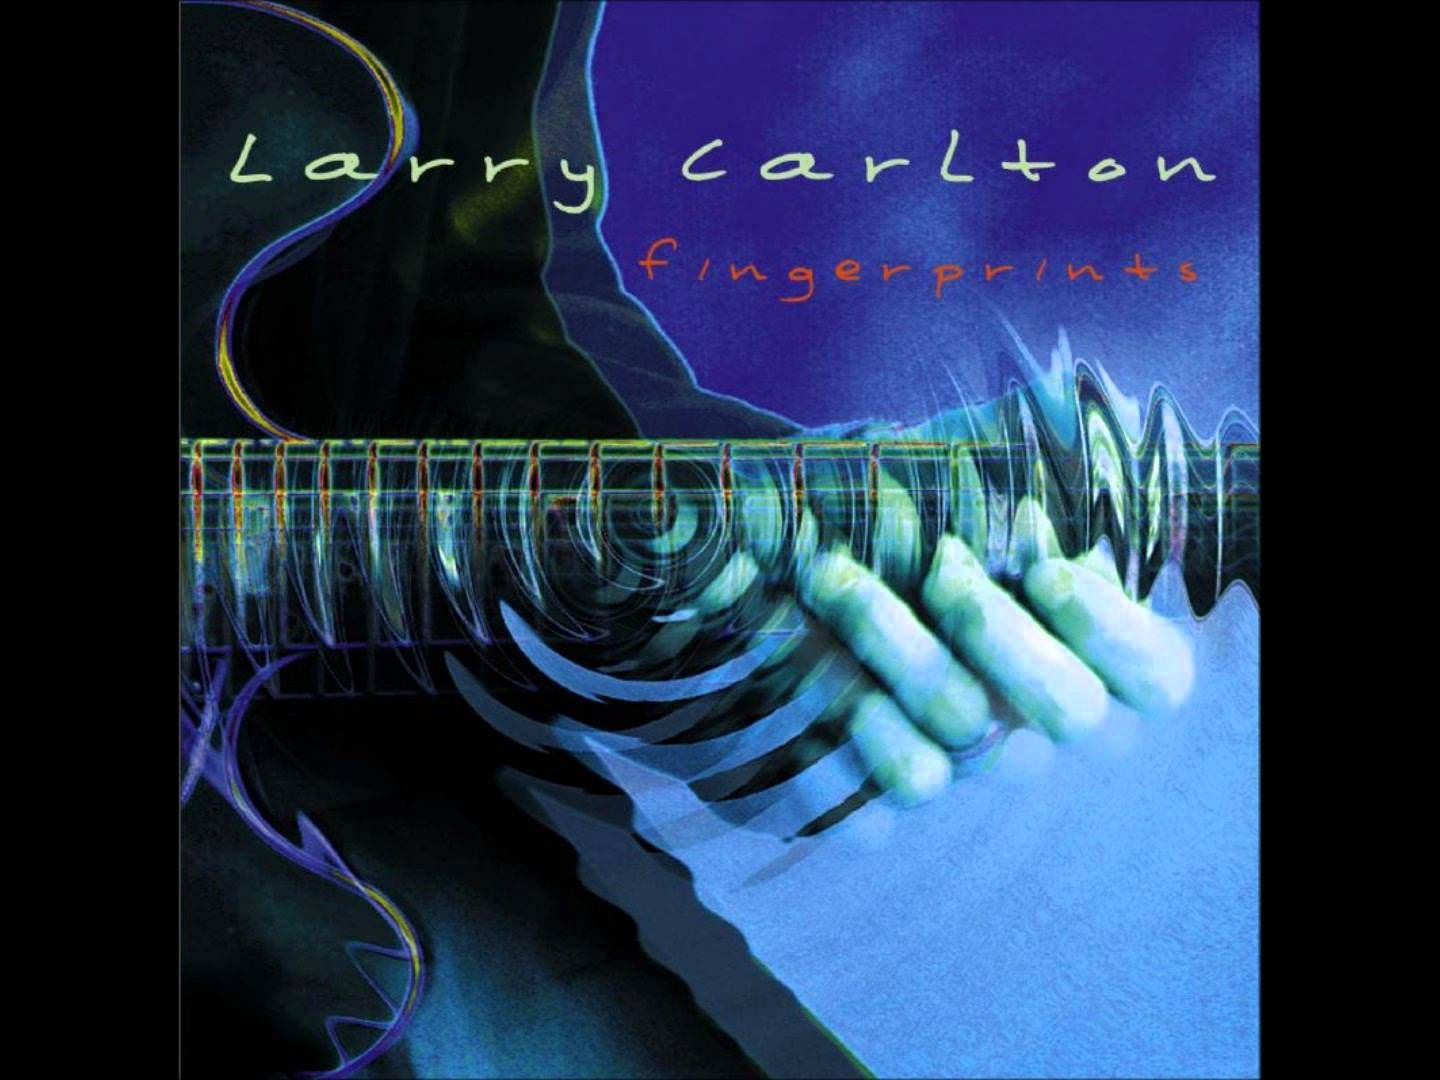 Larry Carlton Fingerprints Full Album With Images Smooth Jazz Carlton Jazz Fusion